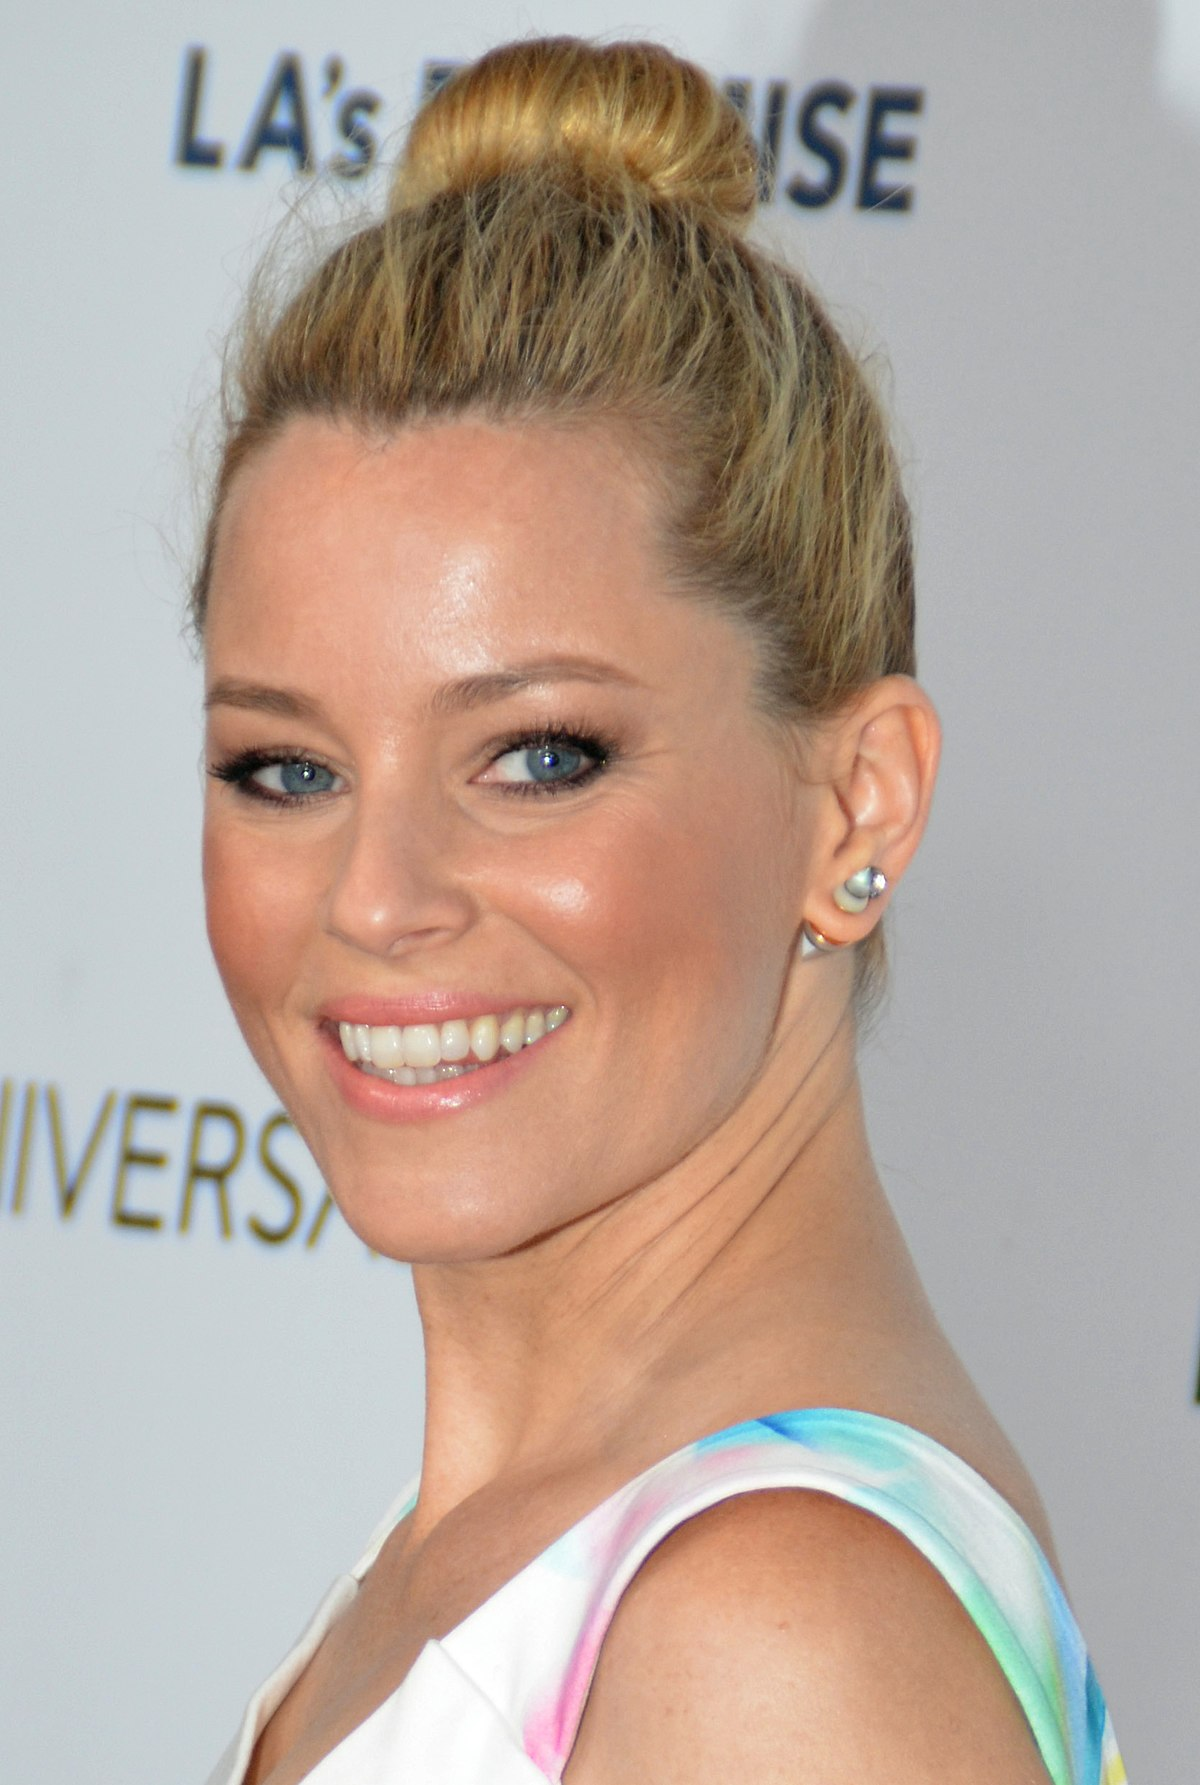 Pics Elizabeth Banks nudes (79 photos), Tits, Paparazzi, Instagram, braless 2017